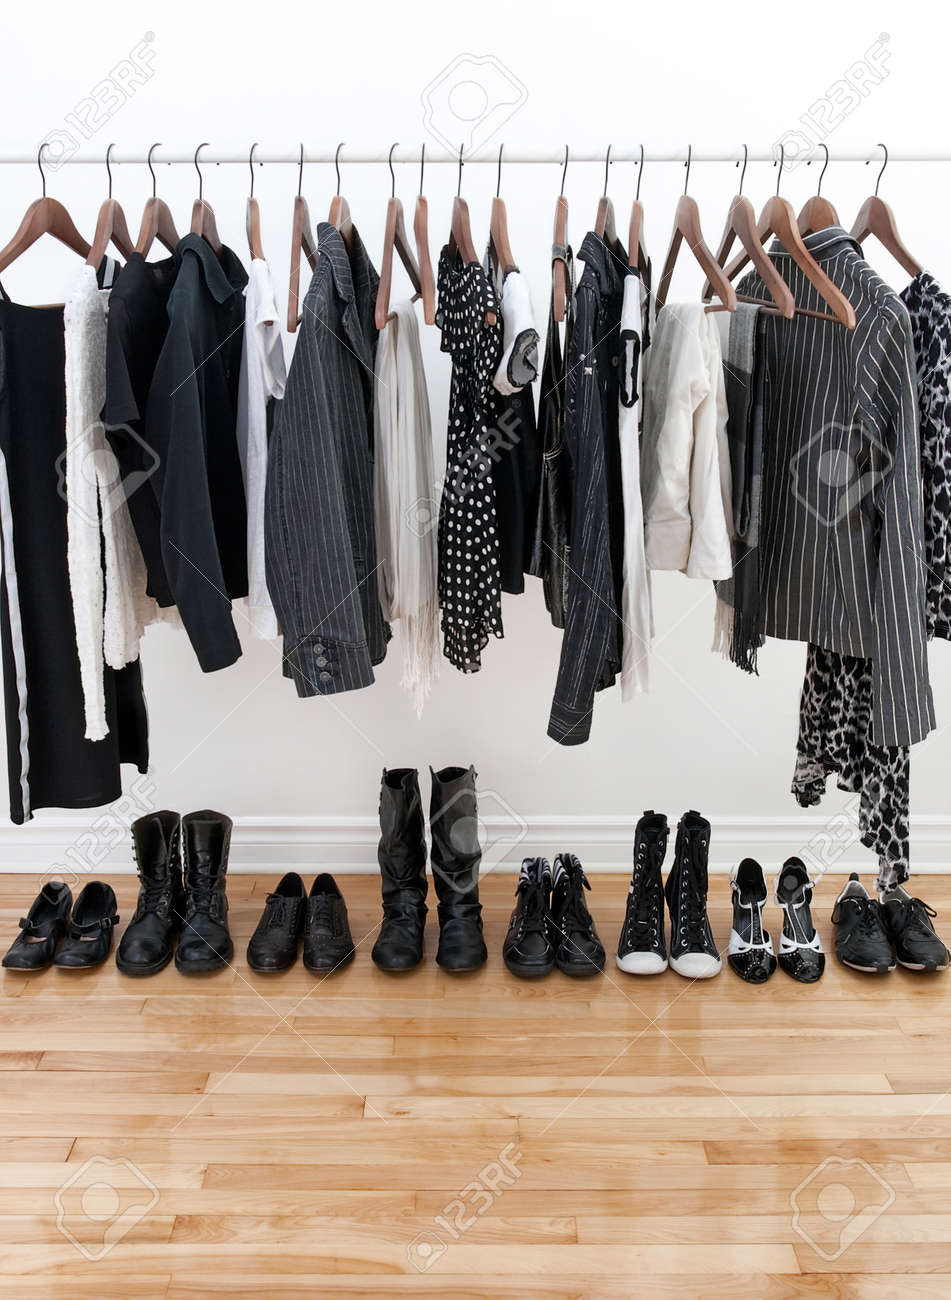 Black and white female clothes on hangers and shoes on a wooden floor. Stock Photo - 9071199